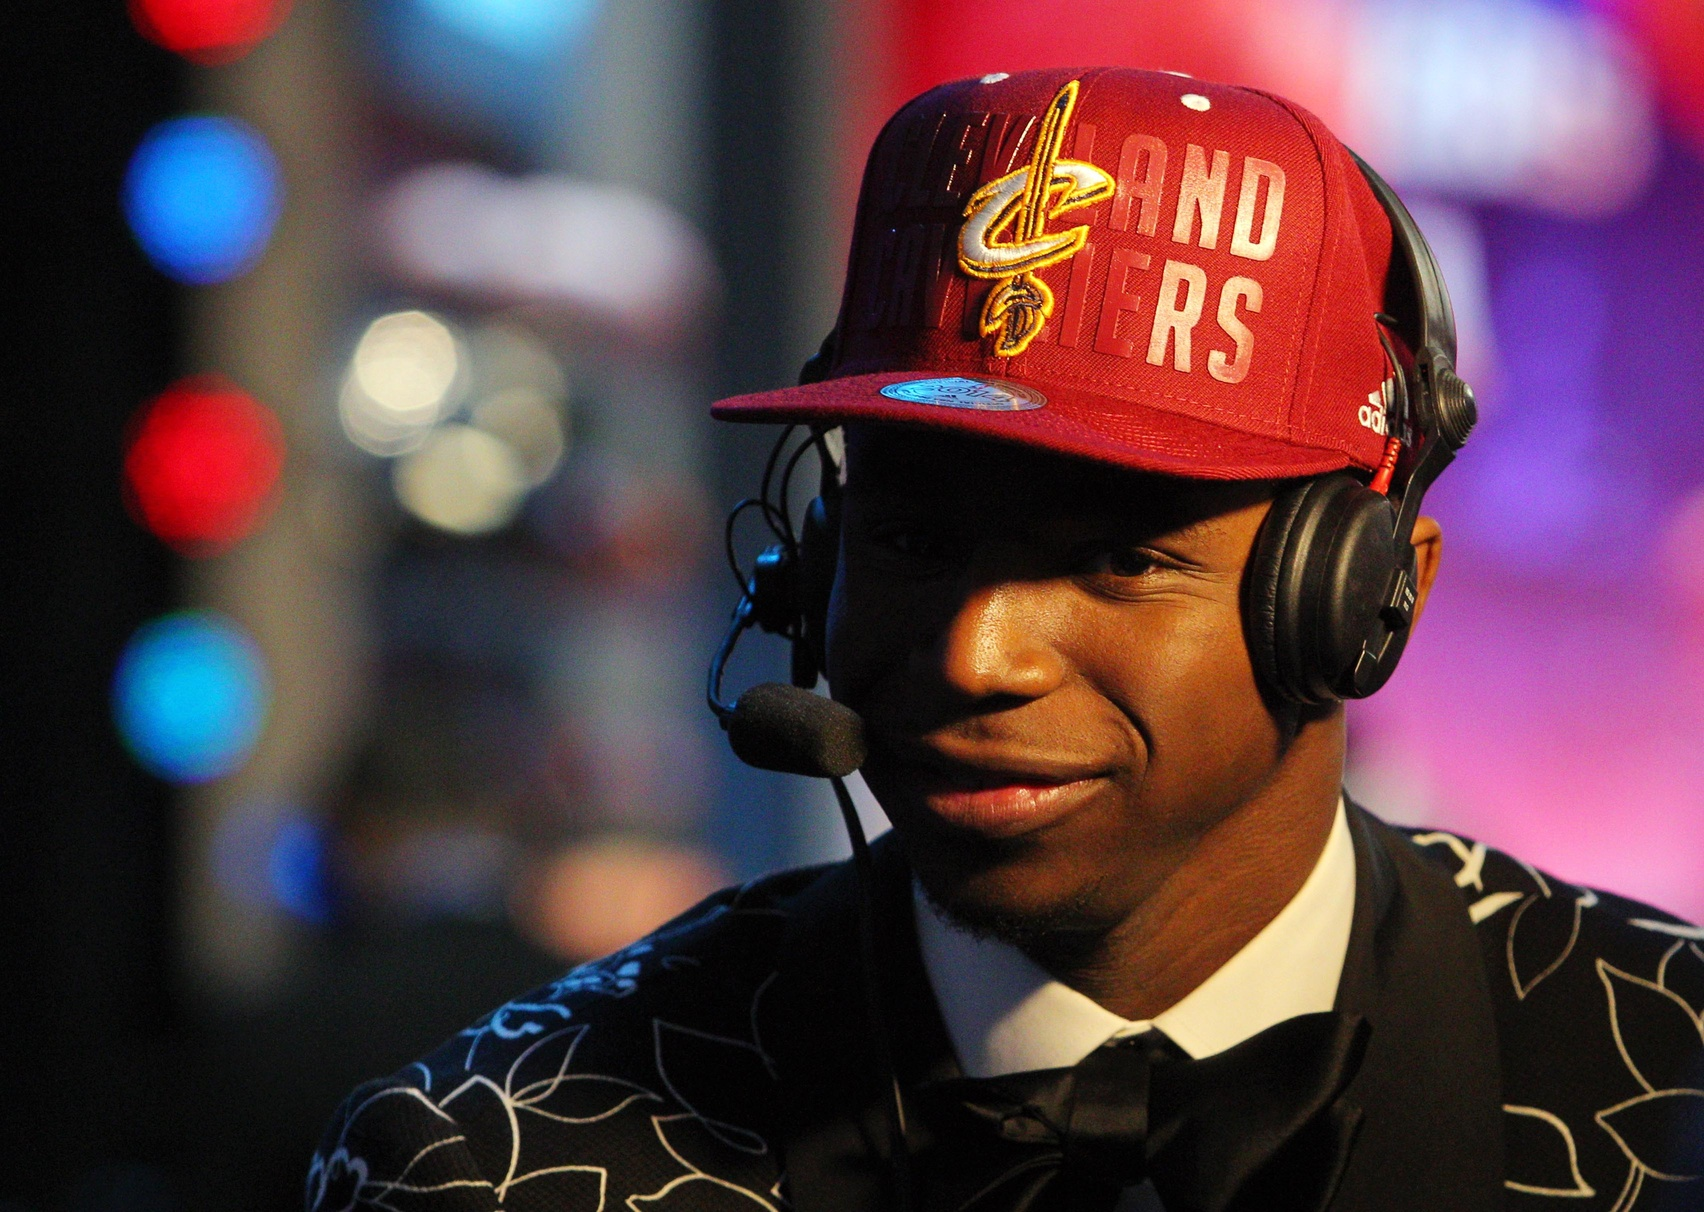 2014 NBA Draft Selections And Analysis (Player/Agent)